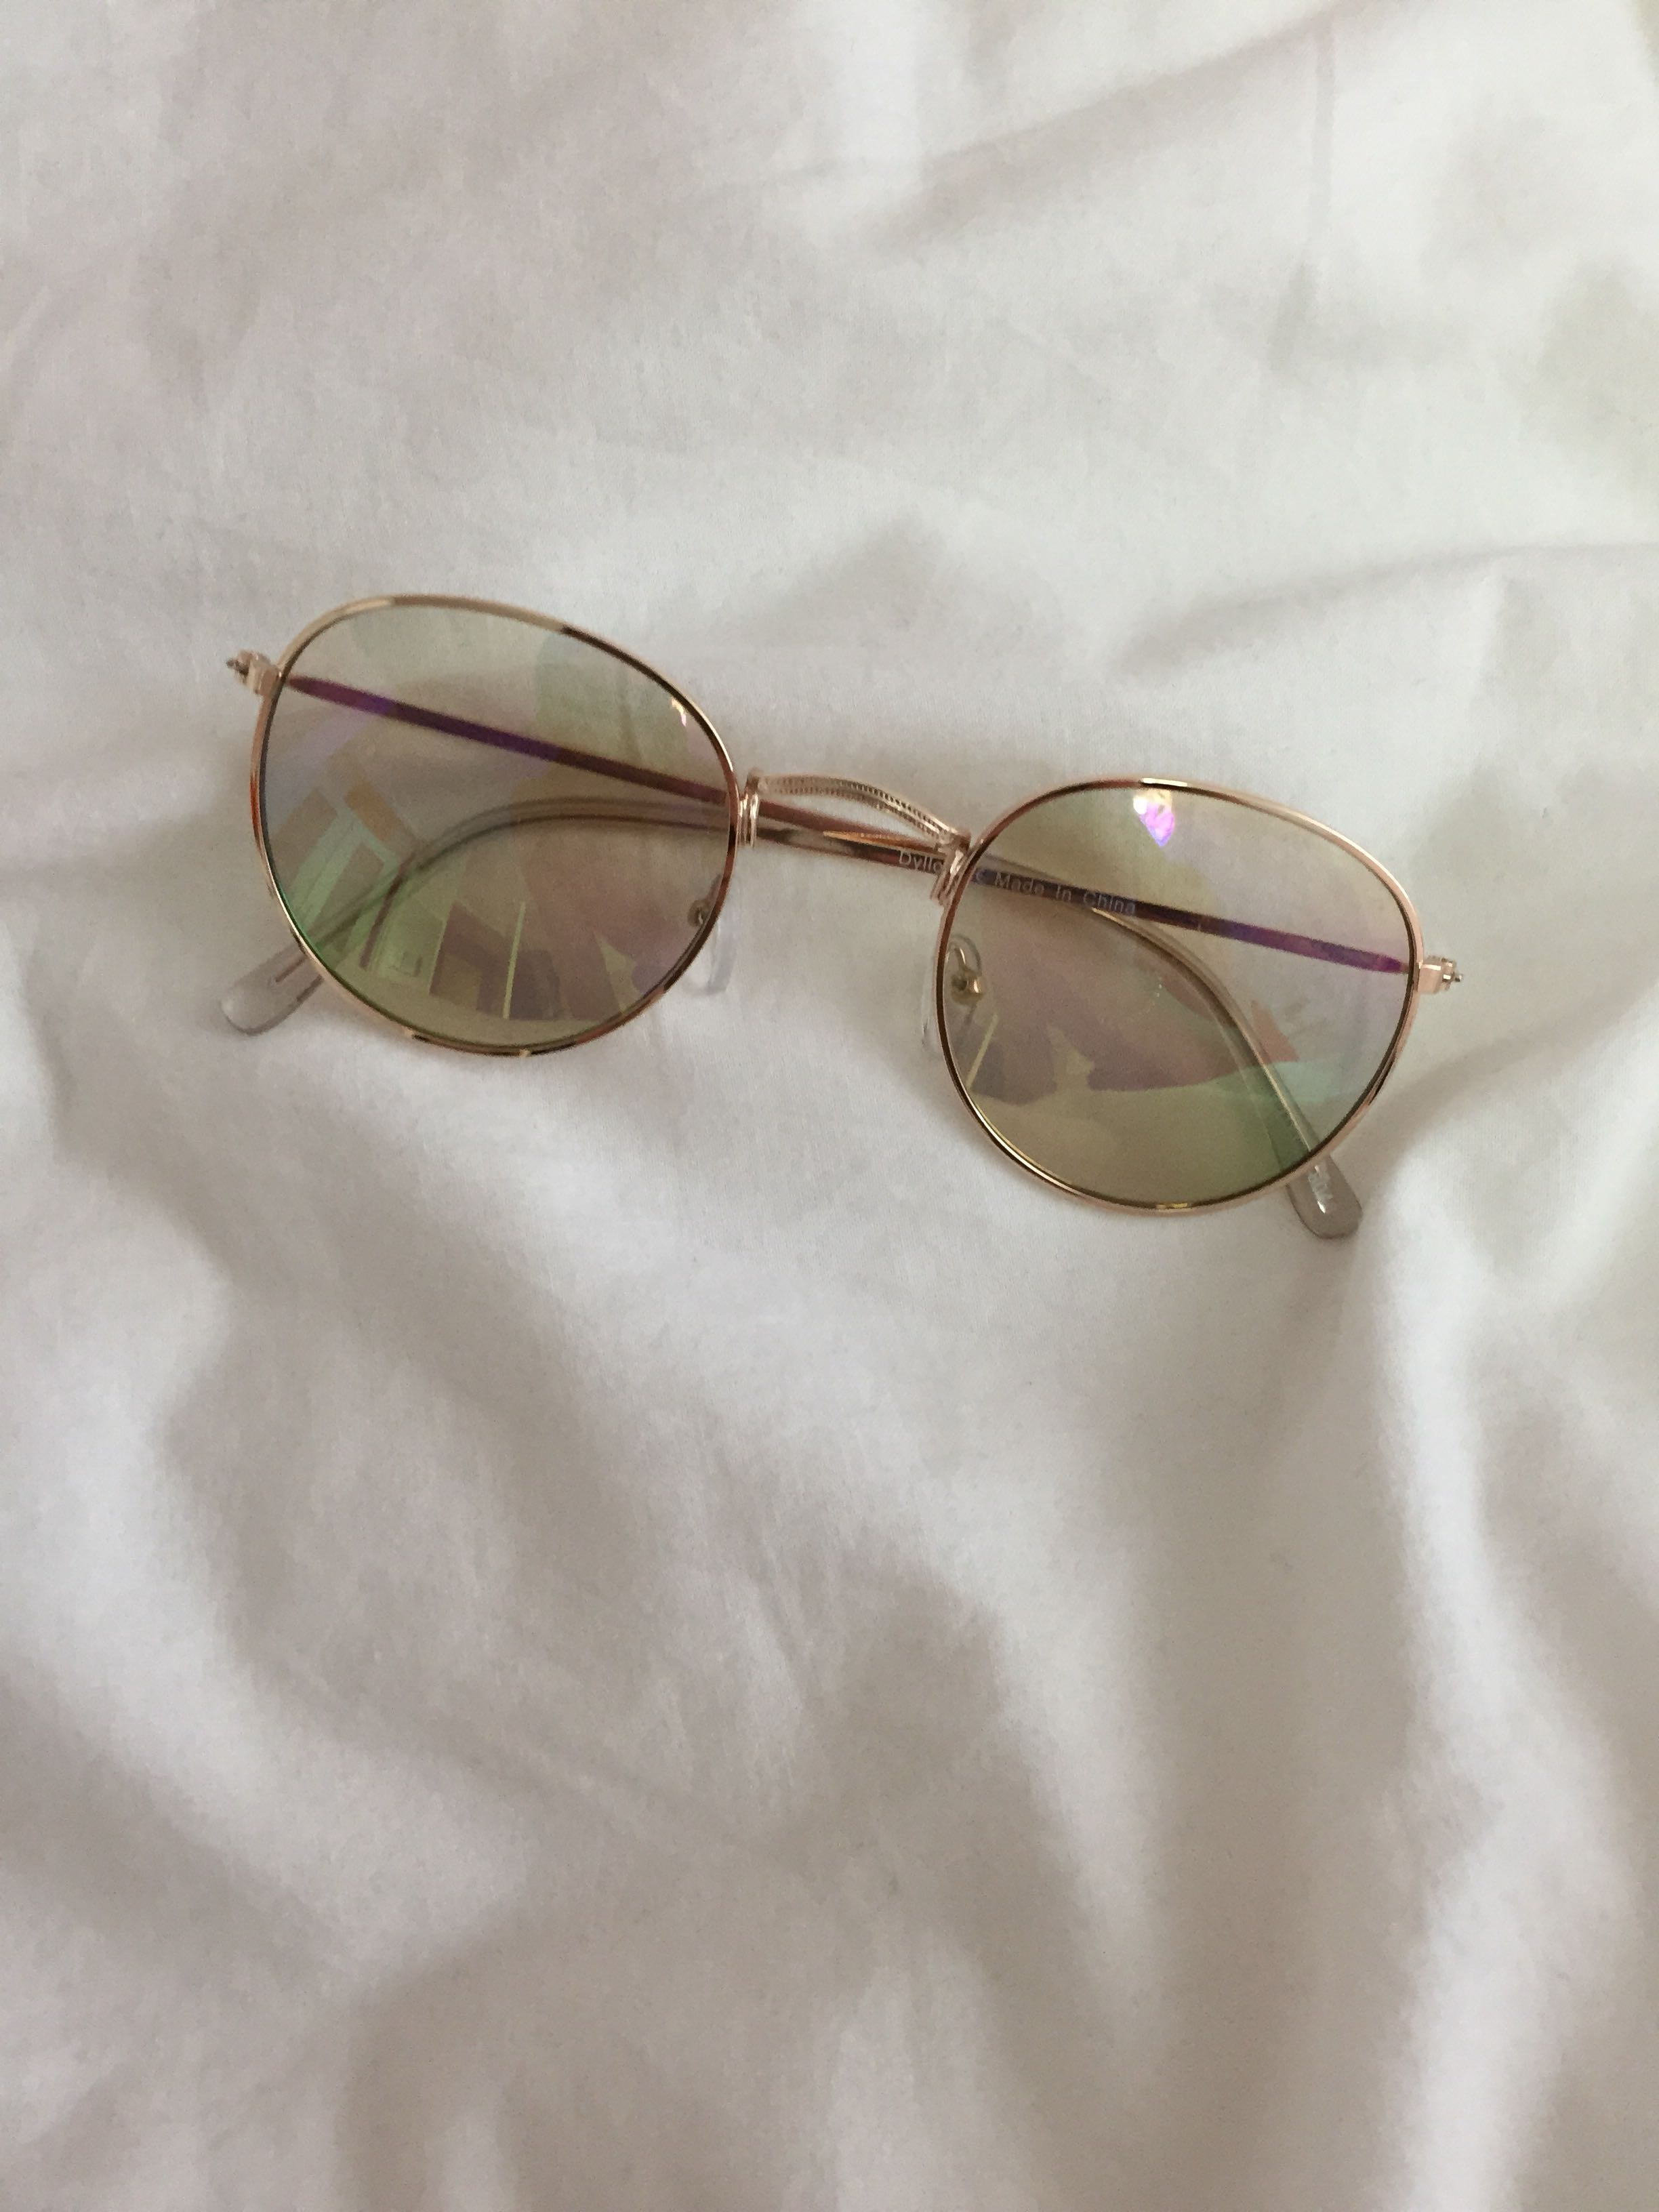 Urban outfitters rainbow sunglasses